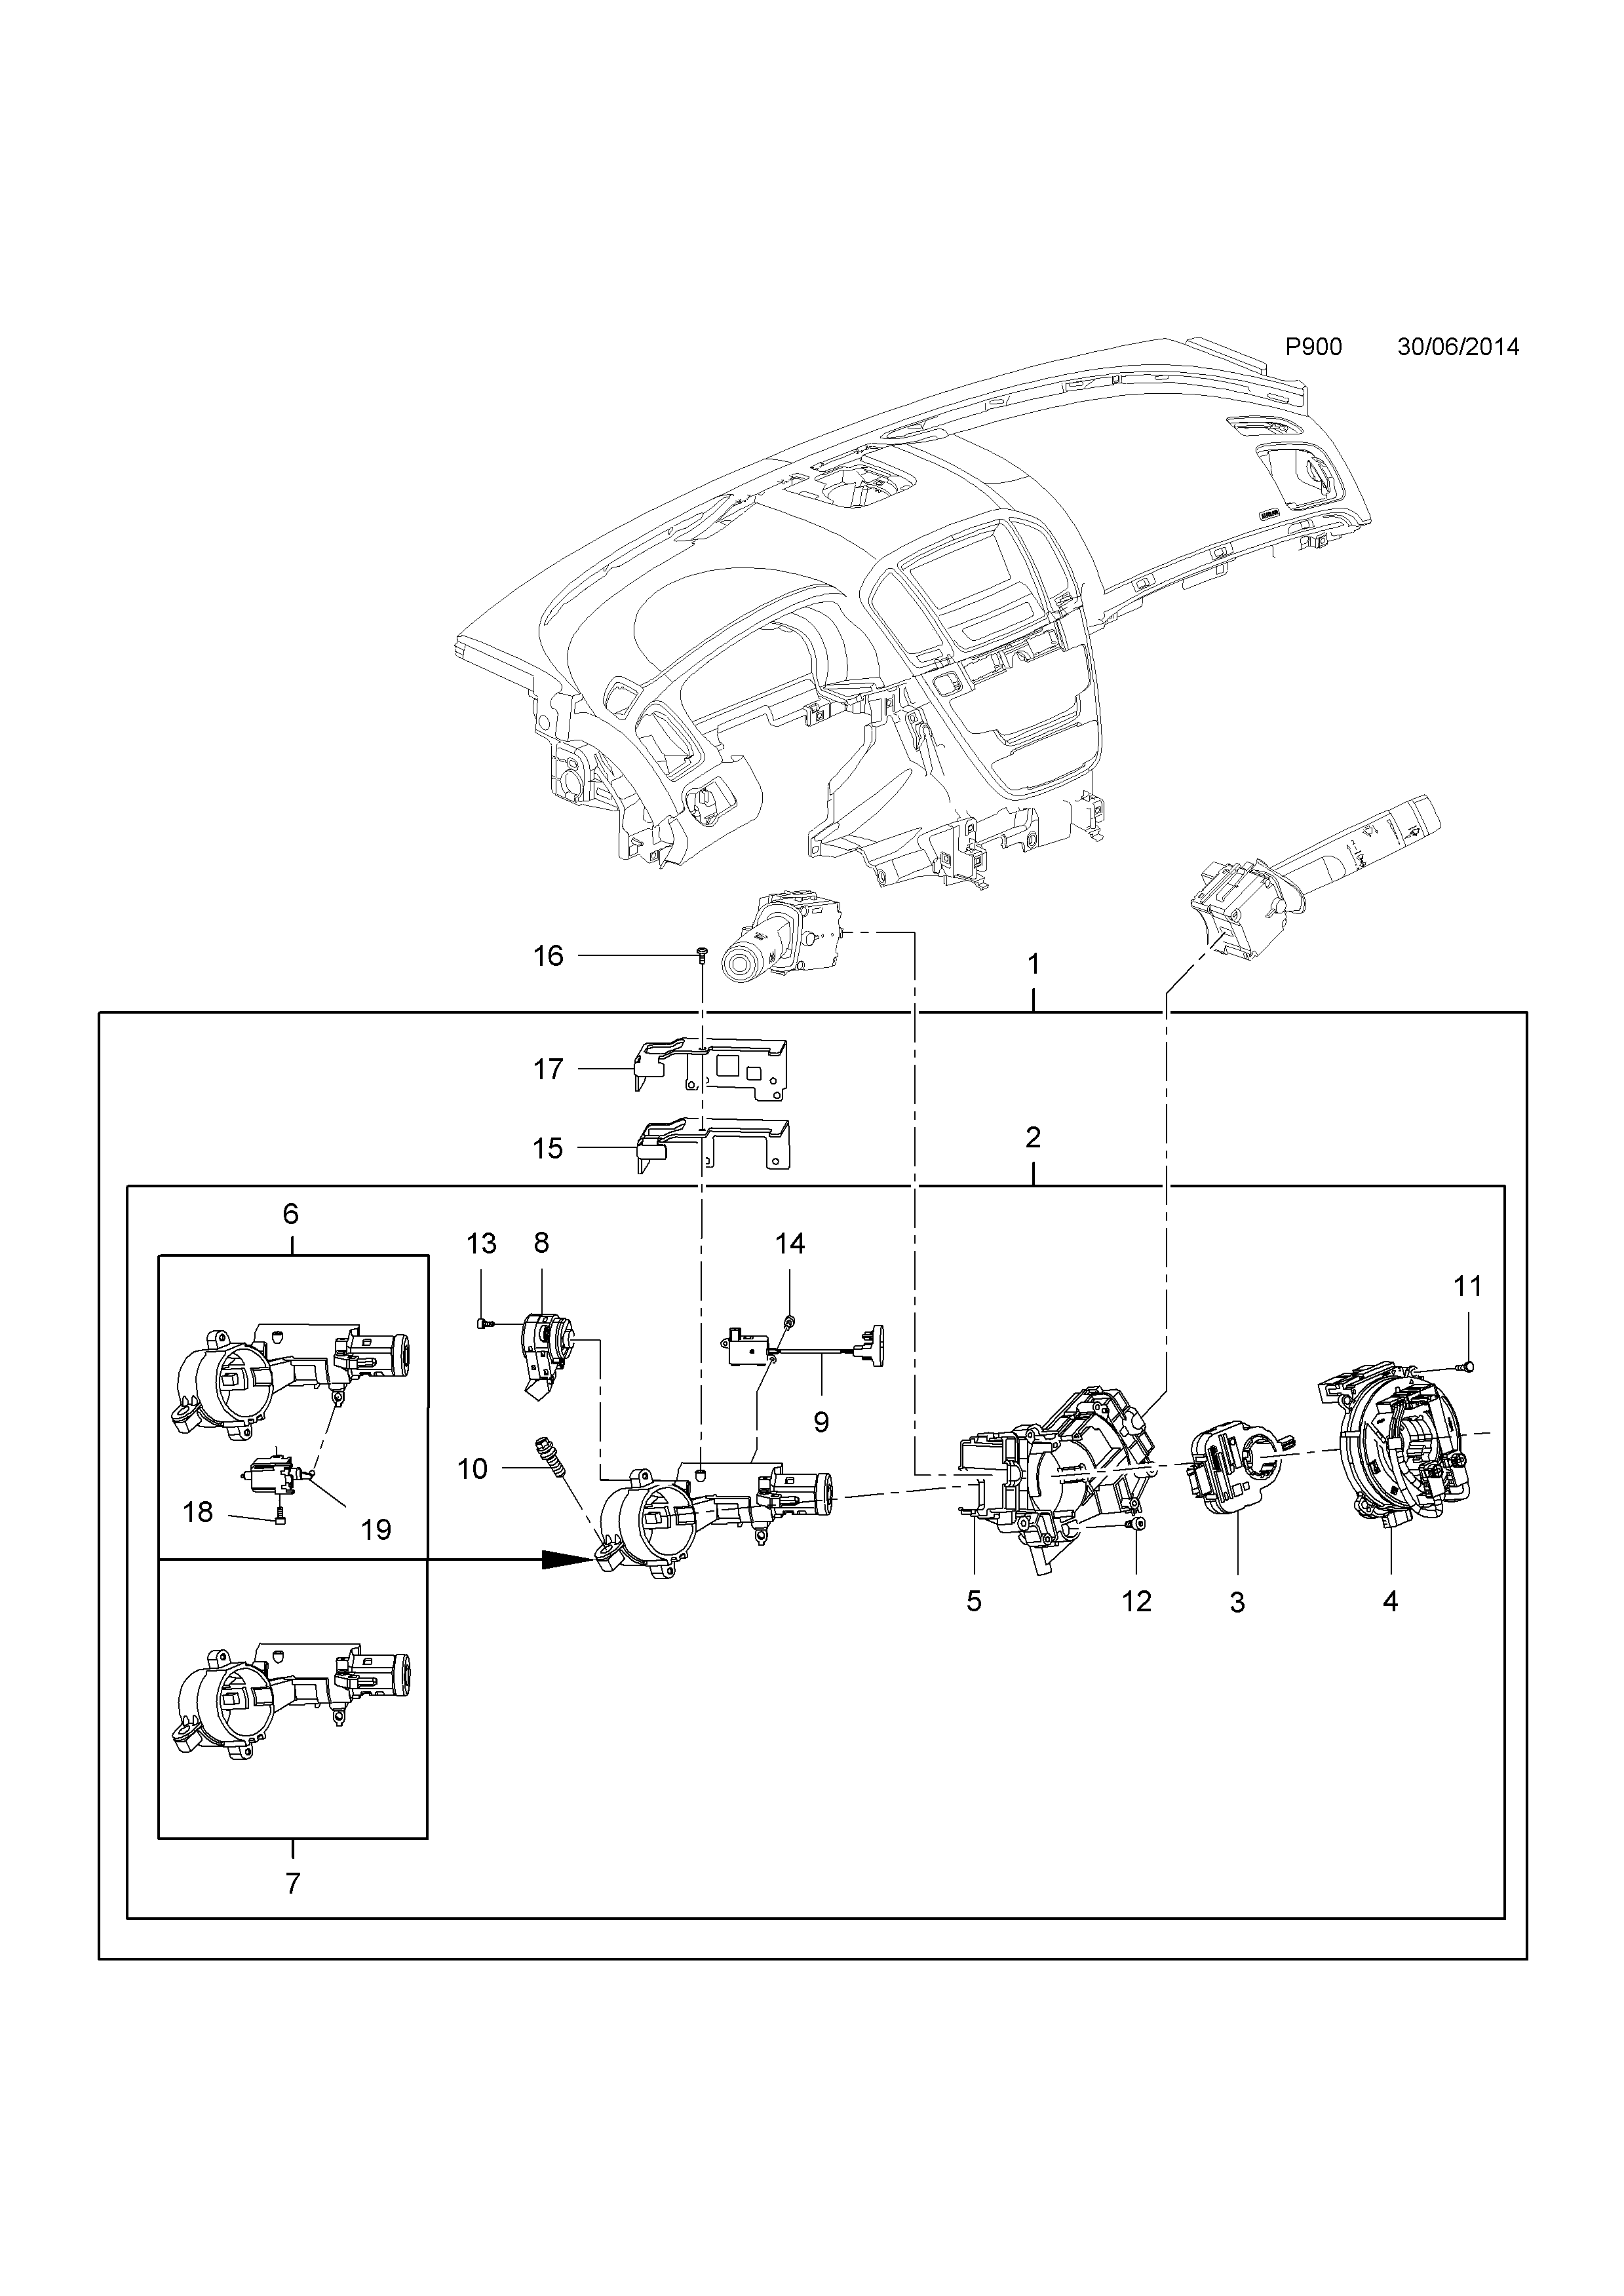 4l80e diagram, allison transmission diagram, transmission fault codes, on vauxhall transmission wiring diagram